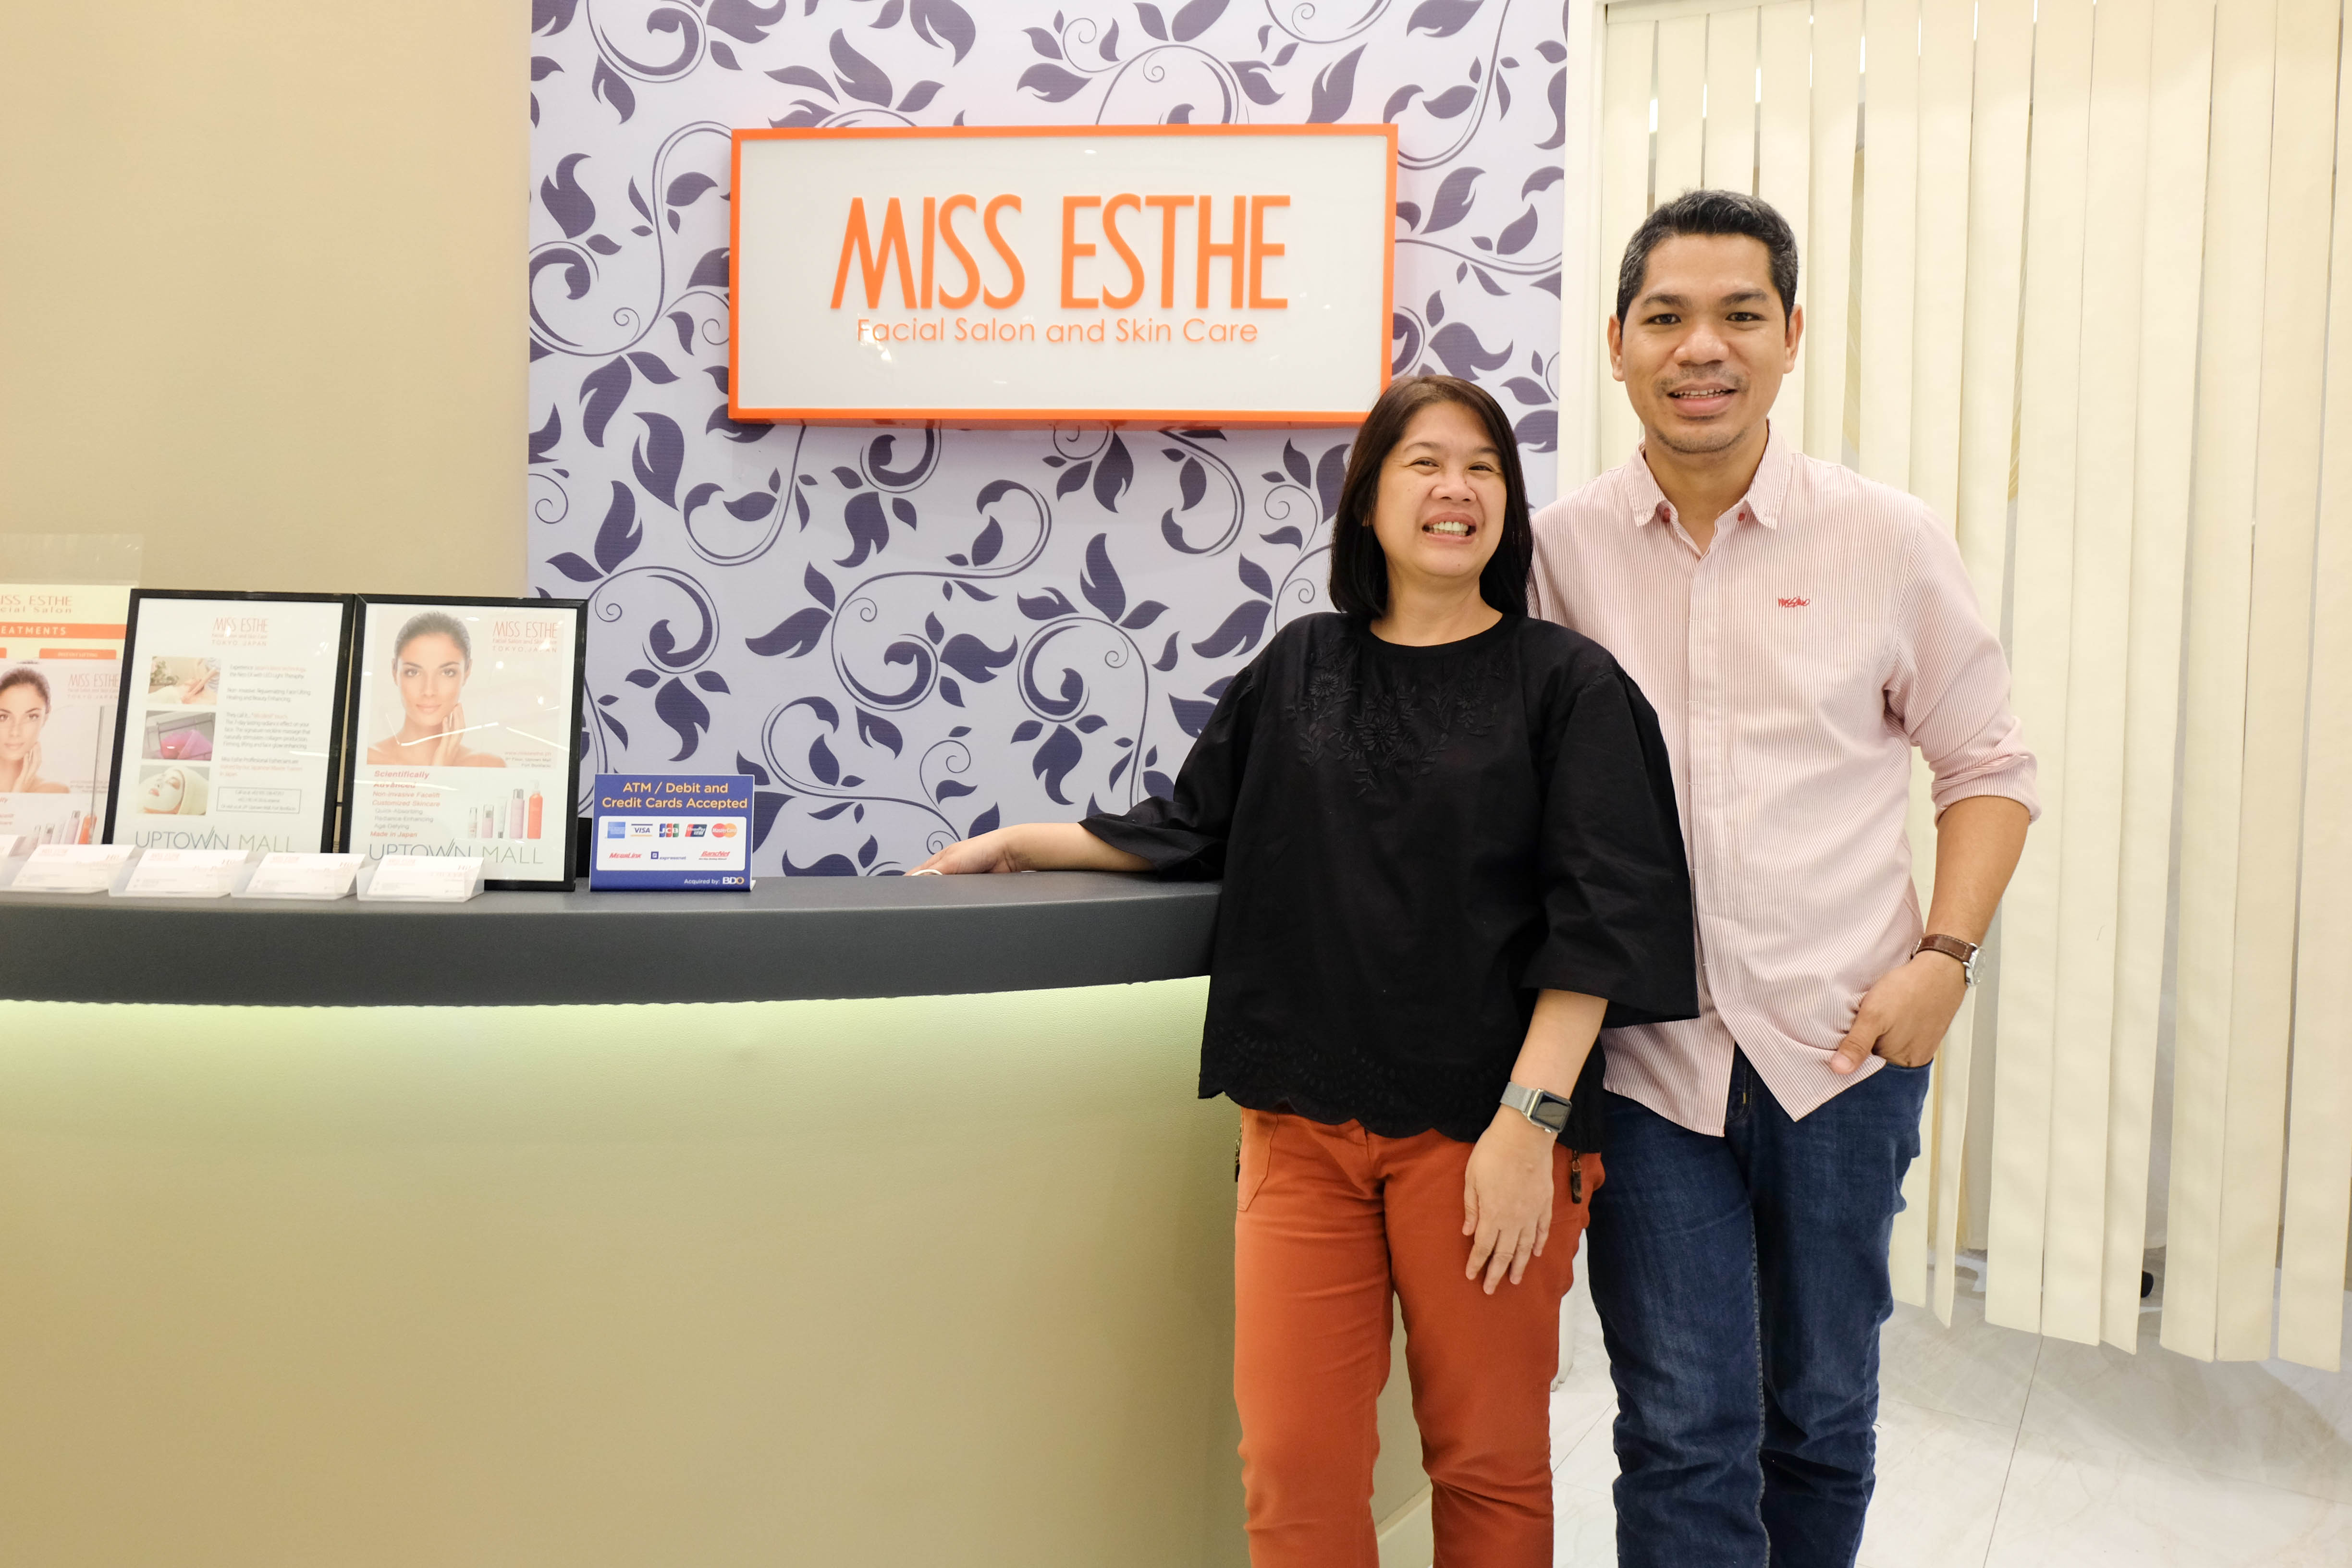 Japan's Miss Esthe Facial Salon and Skin Care in Now in the Philippines